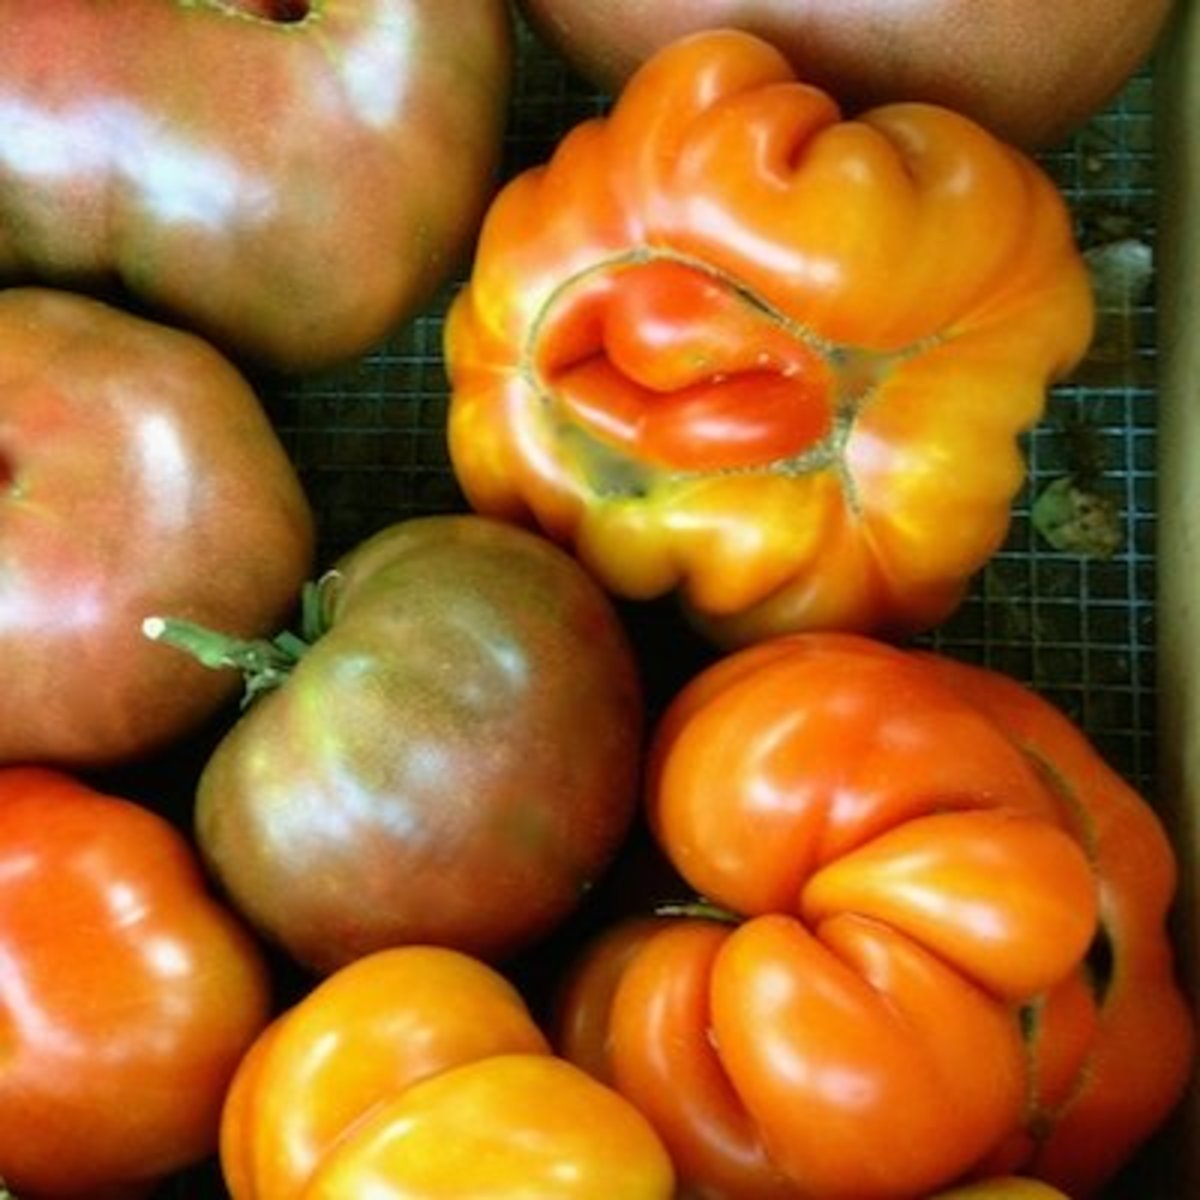 They may not be the prettiest tomatoes, but they still taste like vine-ripened and home-grown.